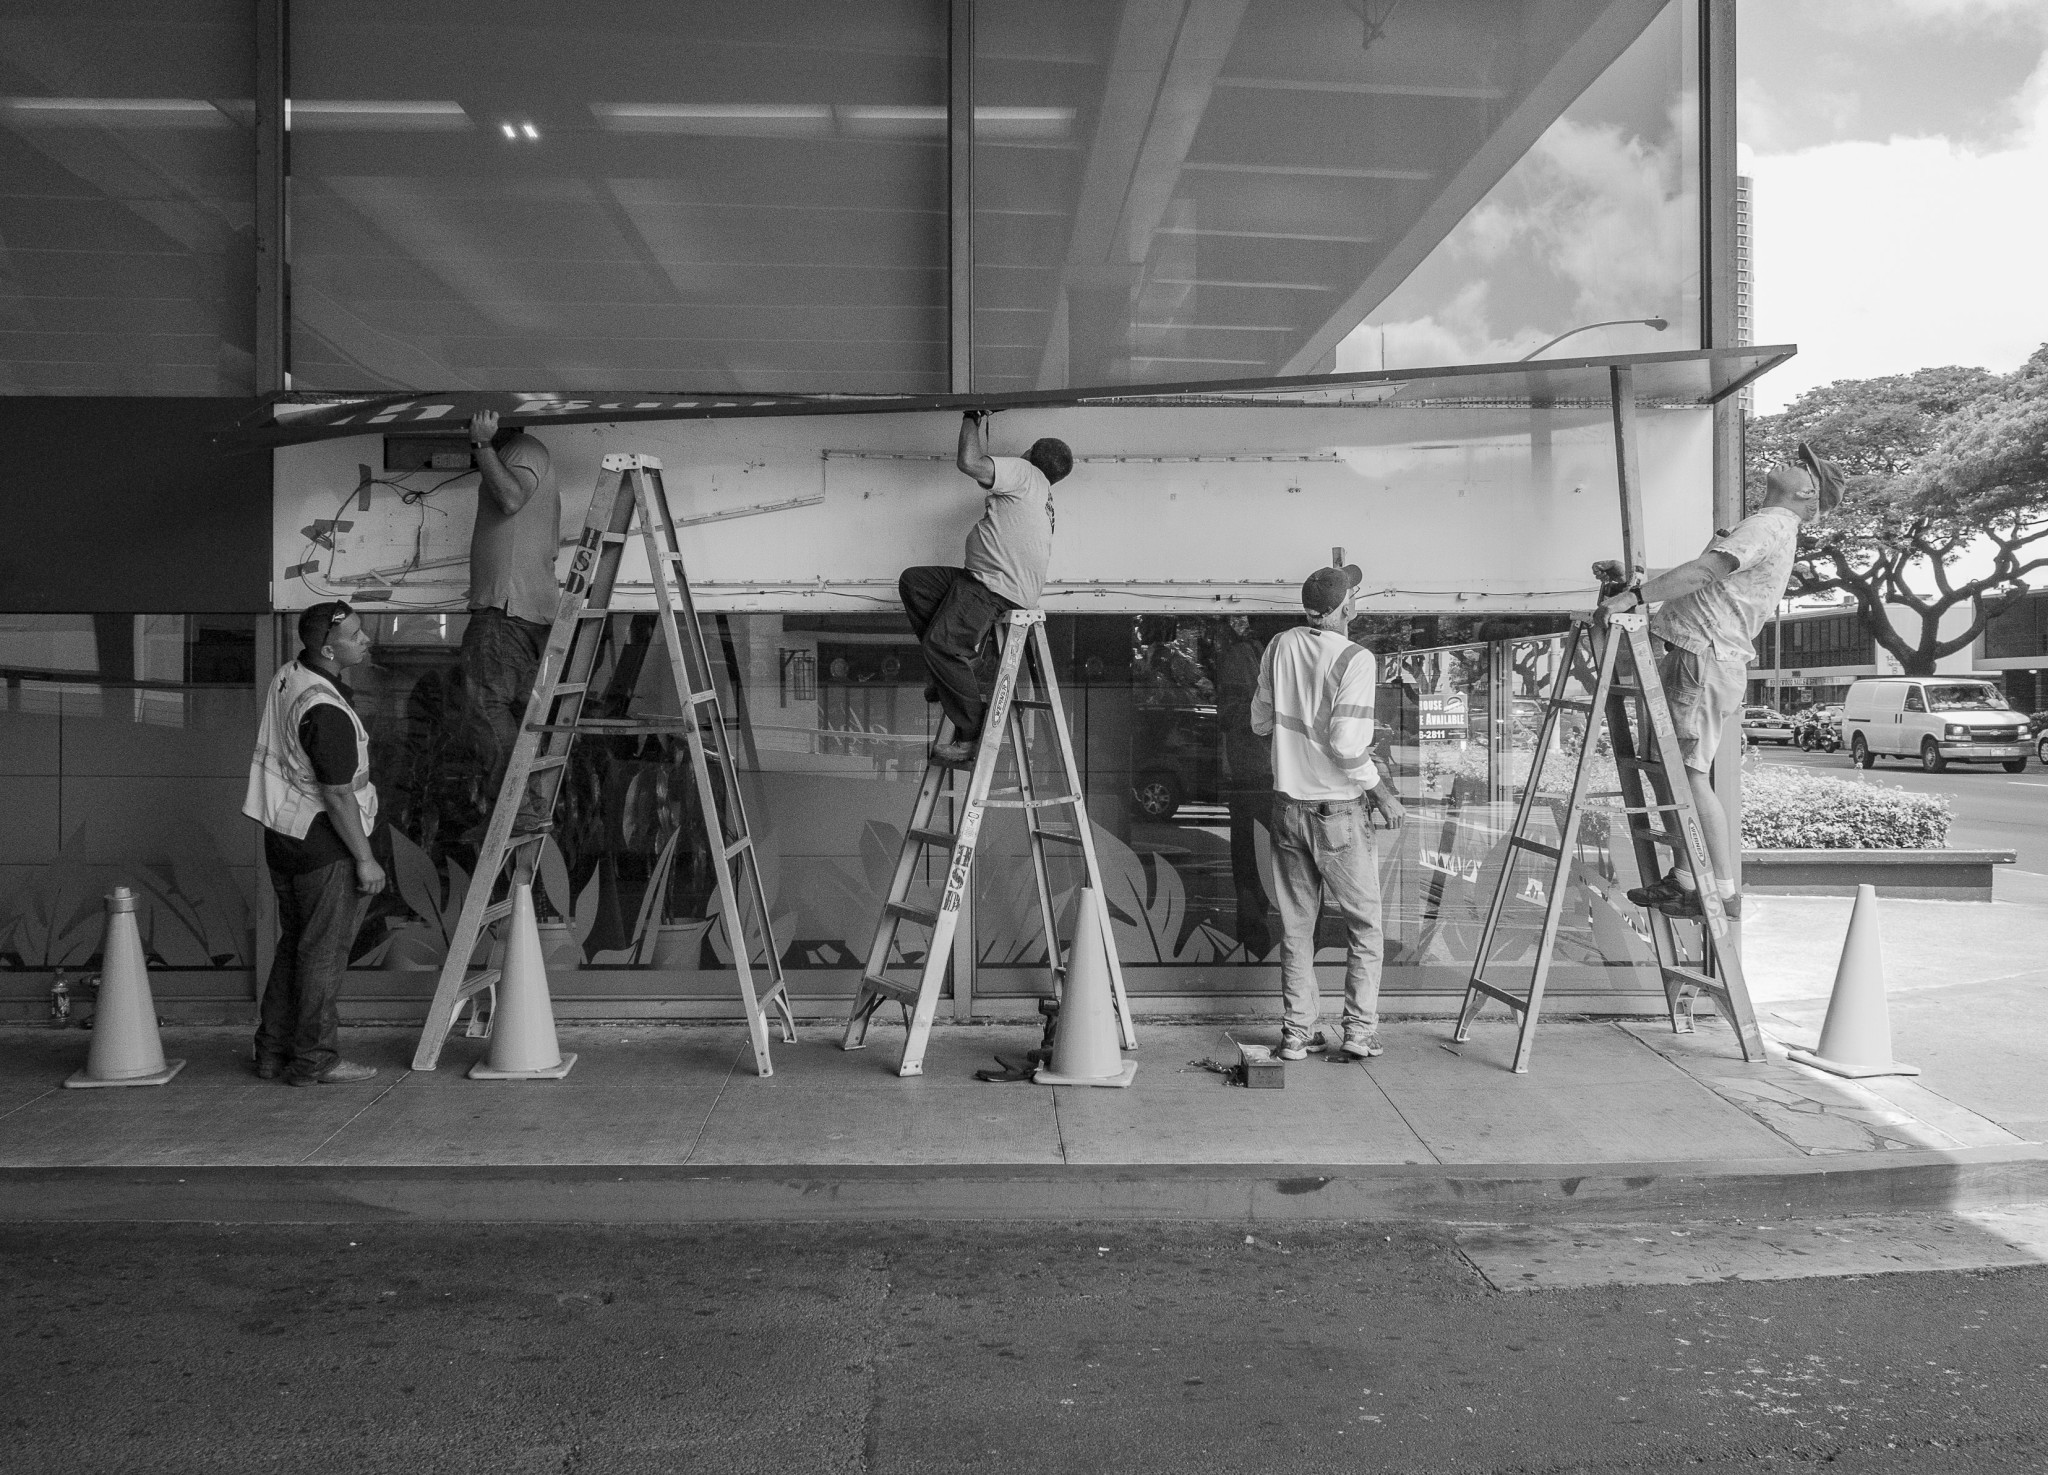 <p>Teamwork and synchronization came into play as men worked on a sign outside a Bank of Hawaii building.</p>